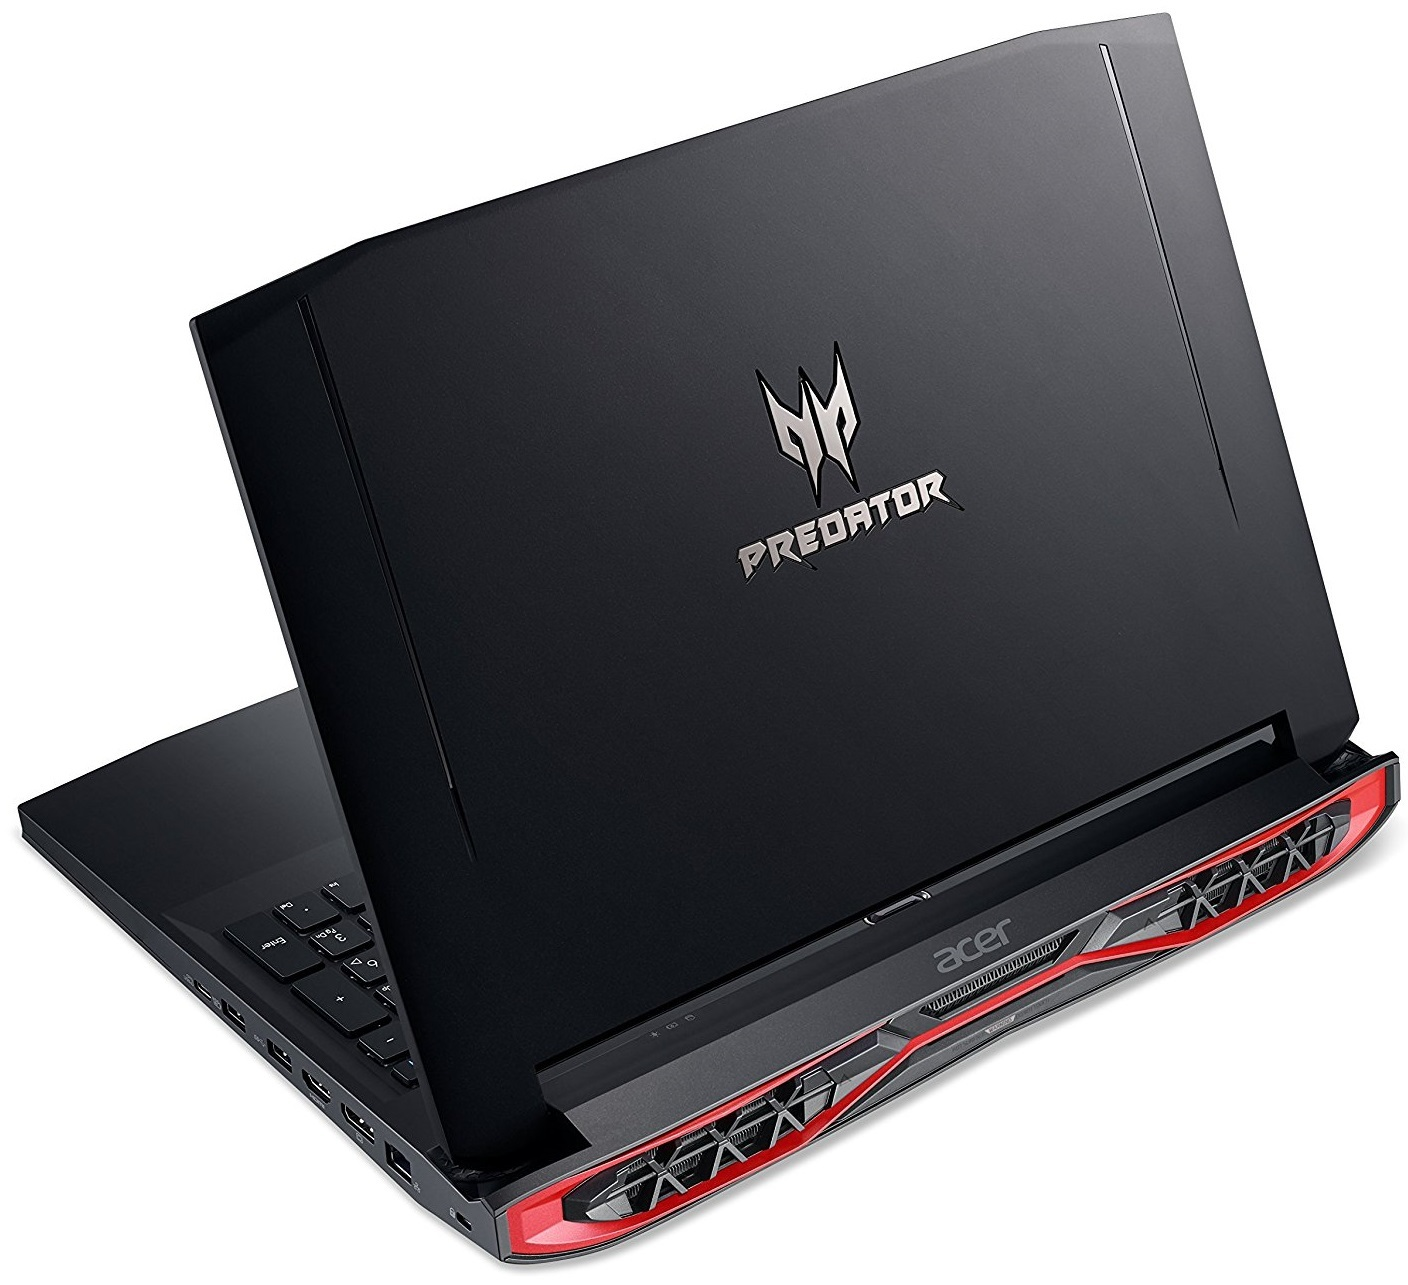 "Acer Predator 17 G9-793-75DS 17.3"" Gaming Laptop Intel Core i7-7700HQ, 16GB RAM, GTX 1070 8GB image"